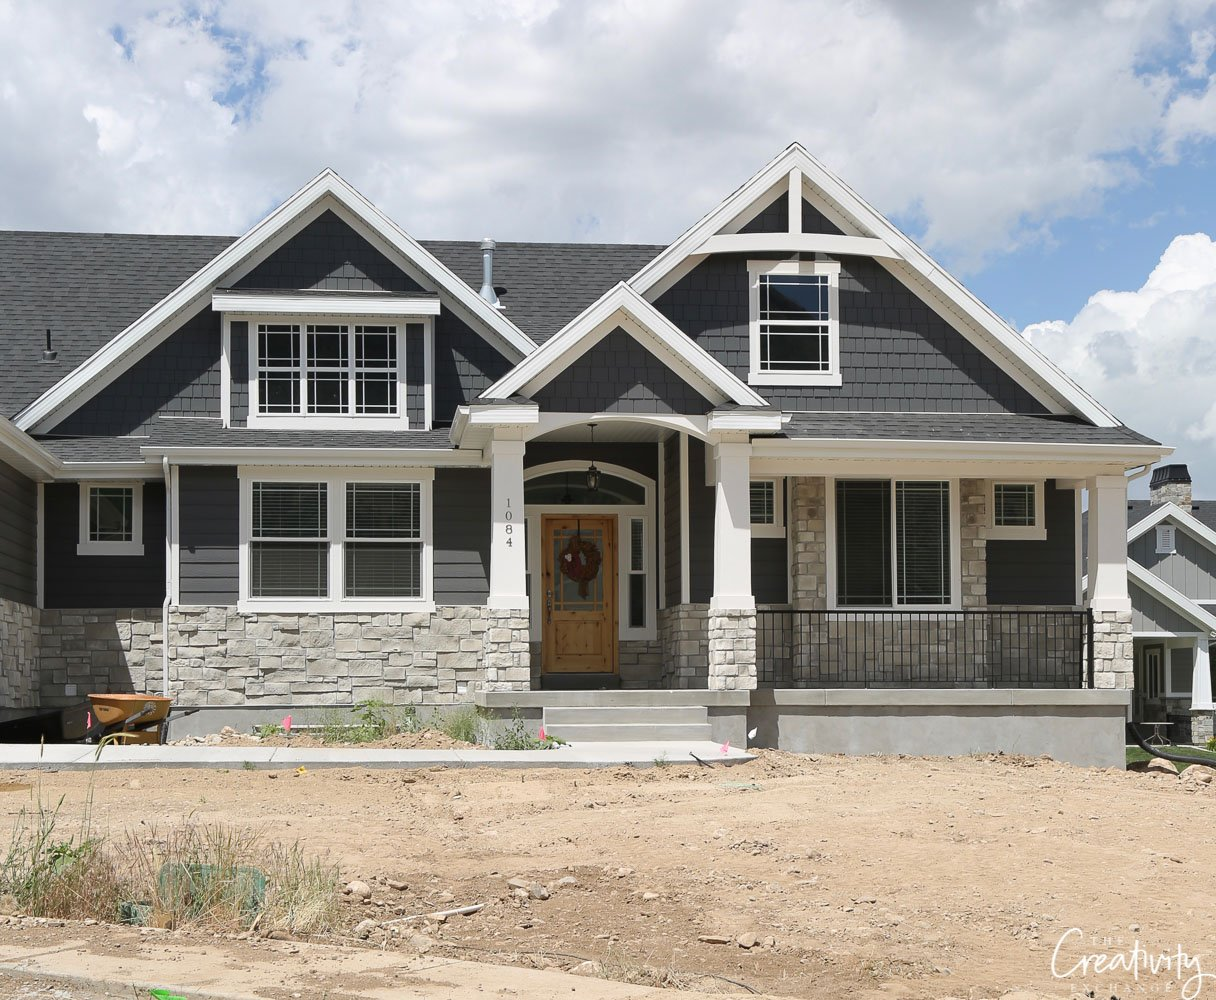 Dark exterior home with stone accents